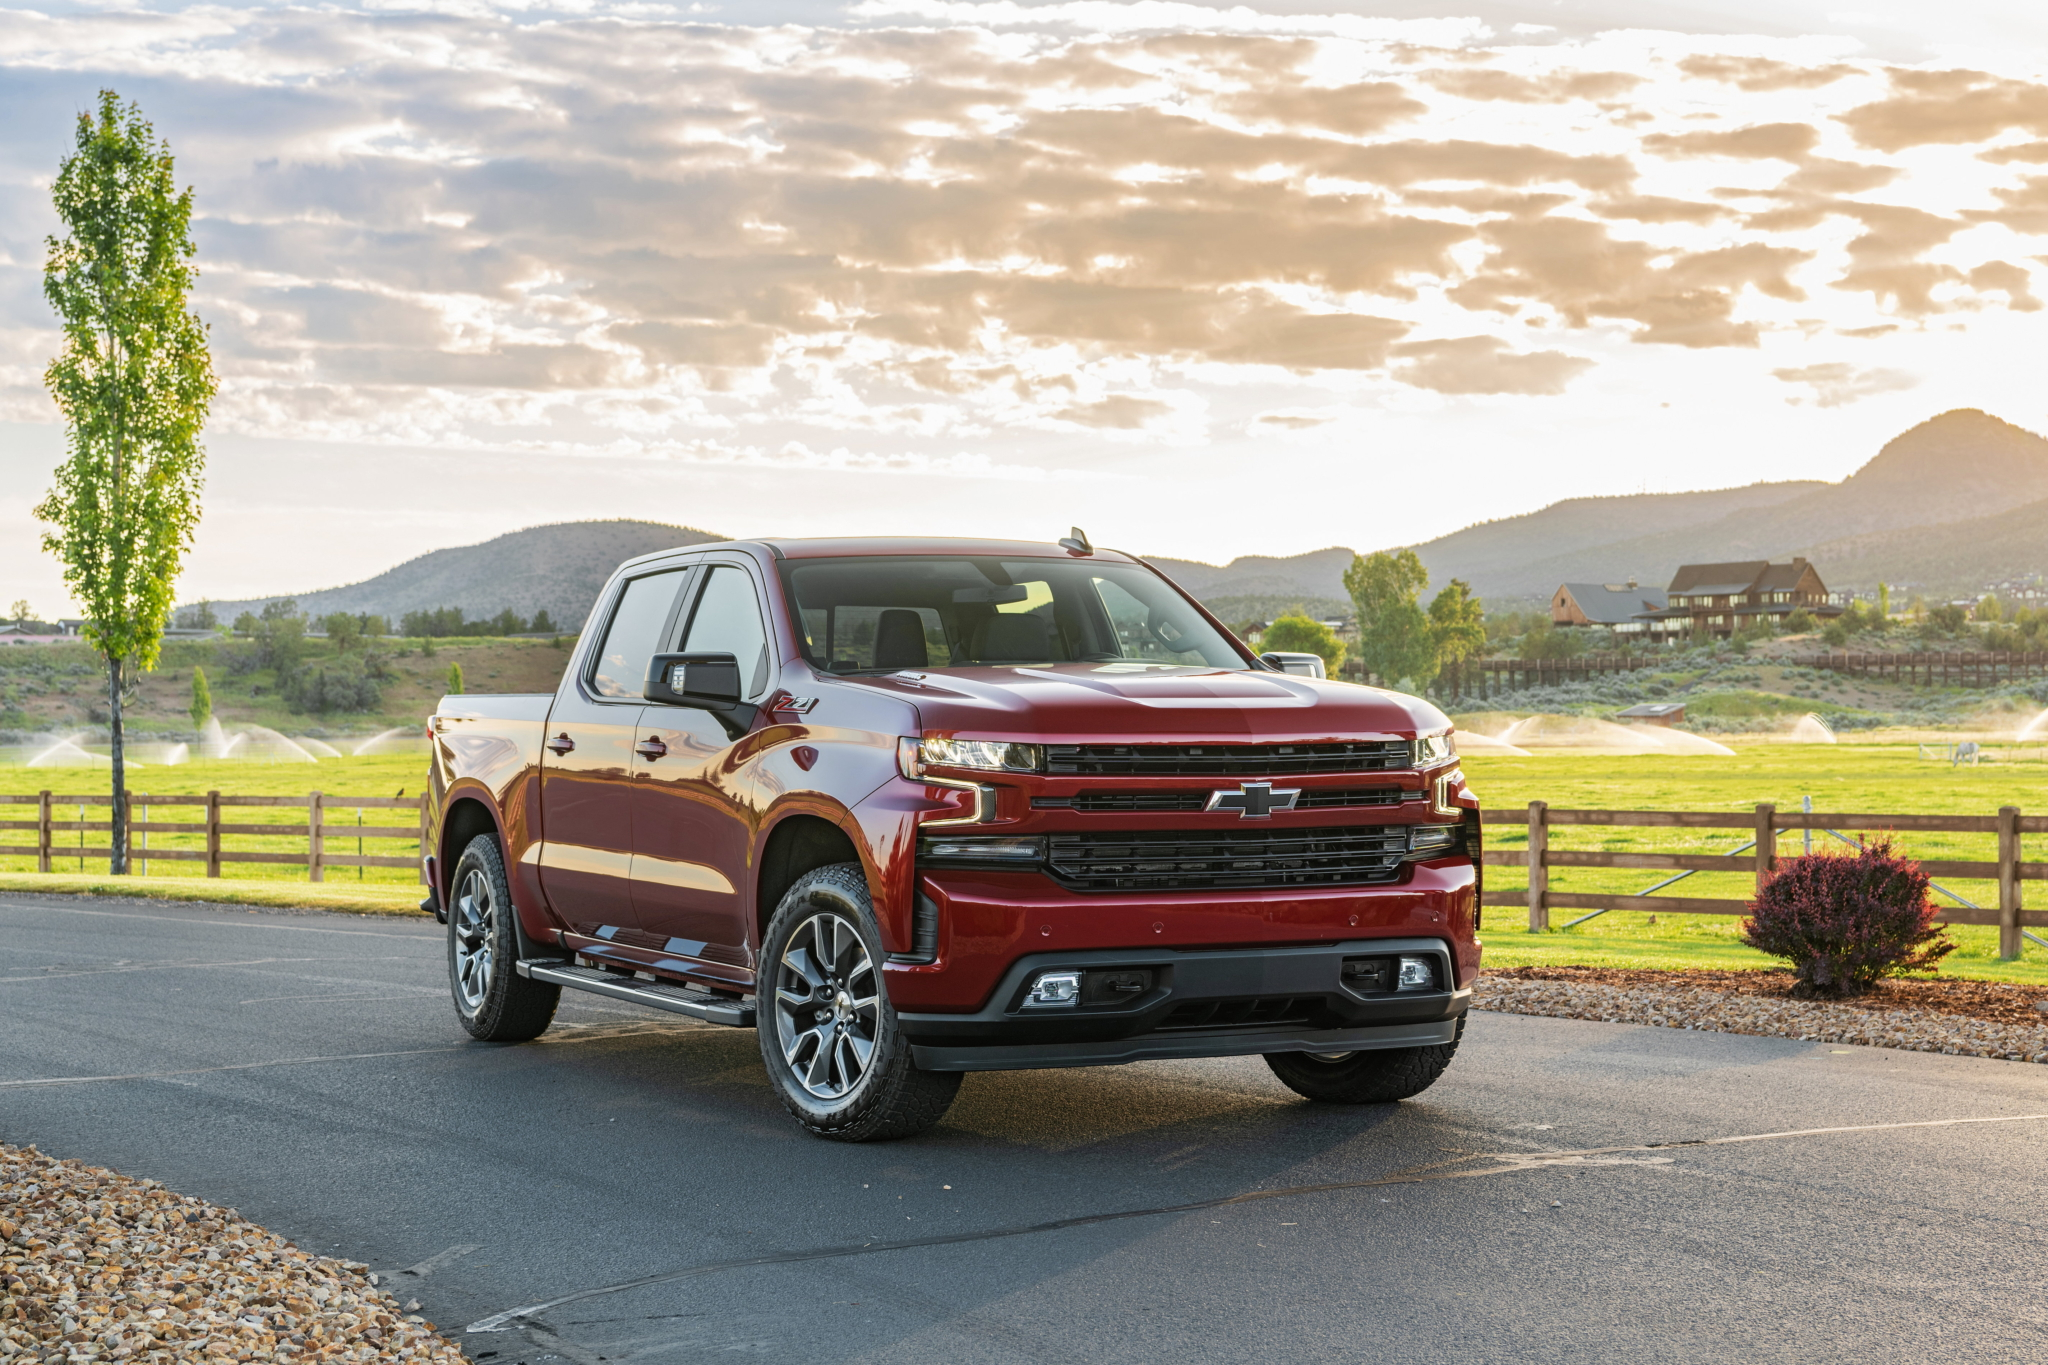 GM recalls vehicles due to overcured Continental tyres